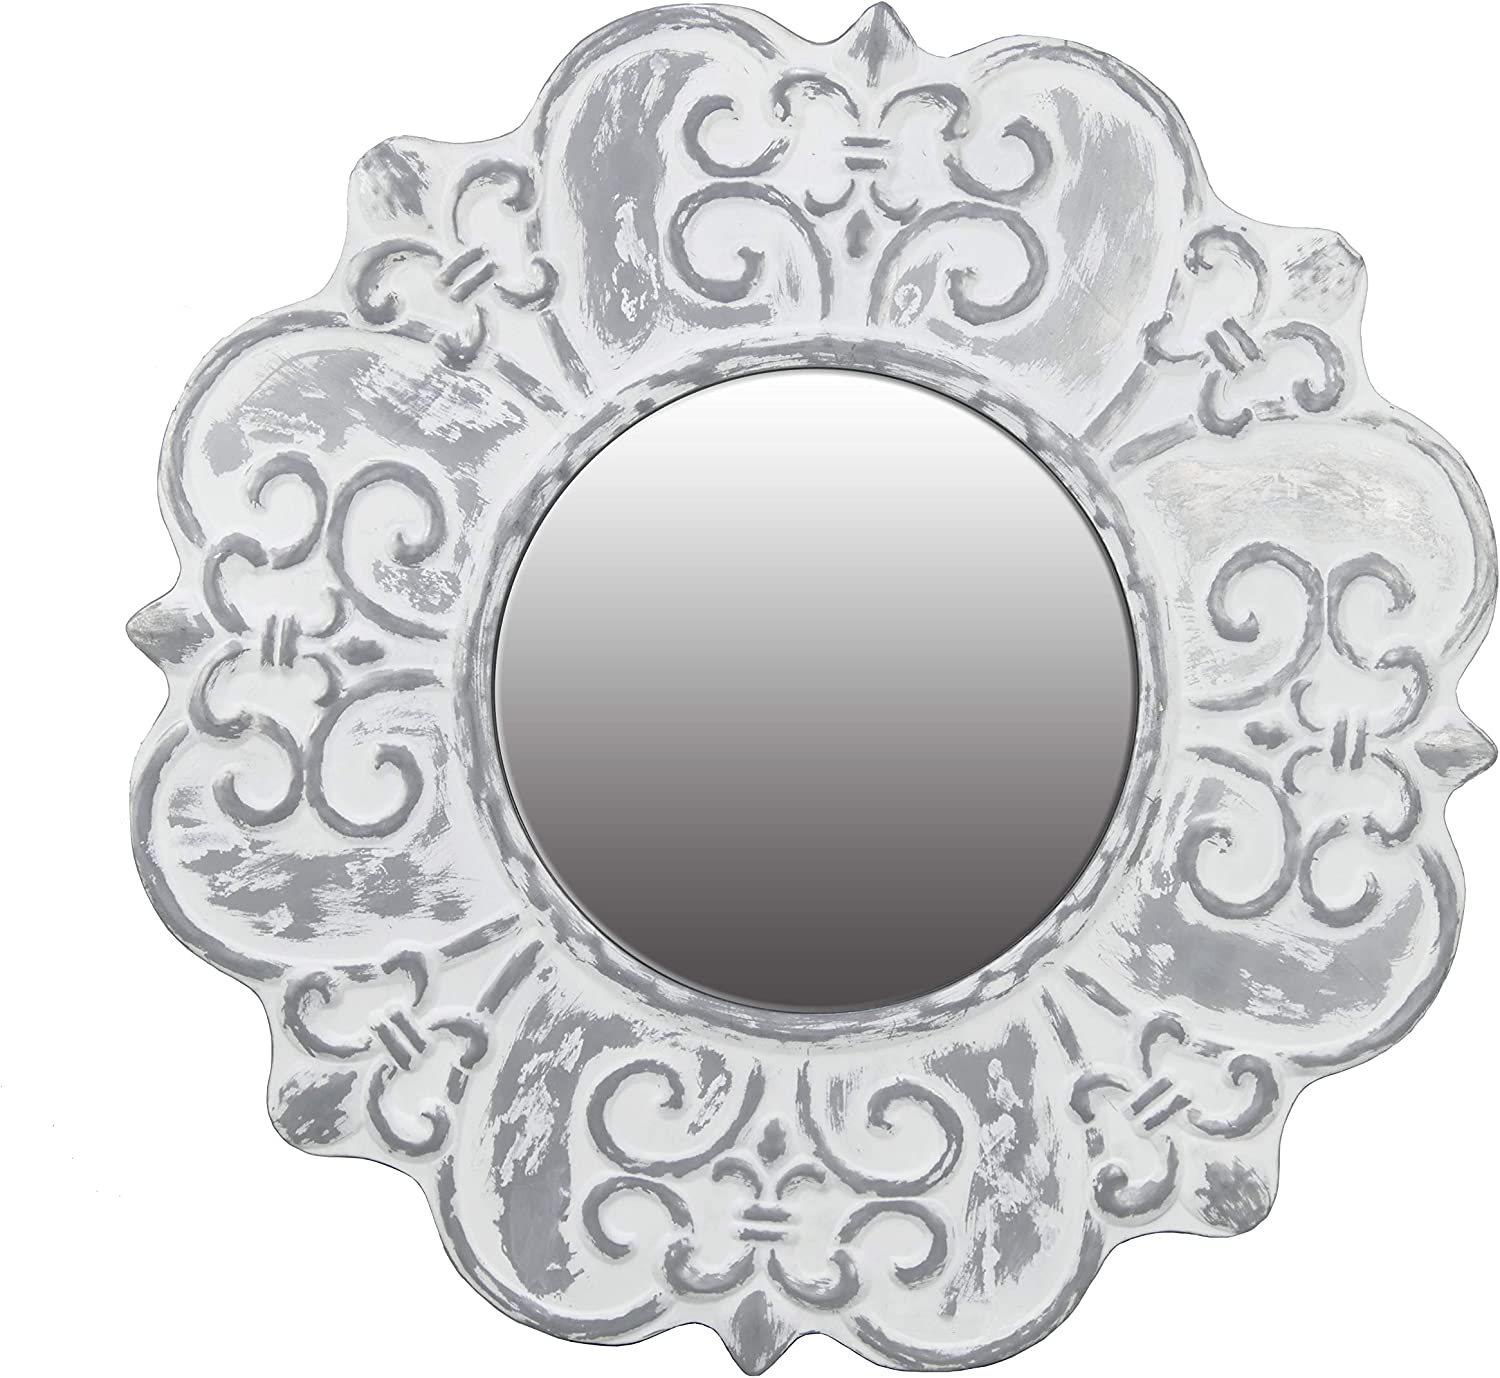 NIKKY HOME 23 Inch Decorative Metal Round Wall Mirror, White